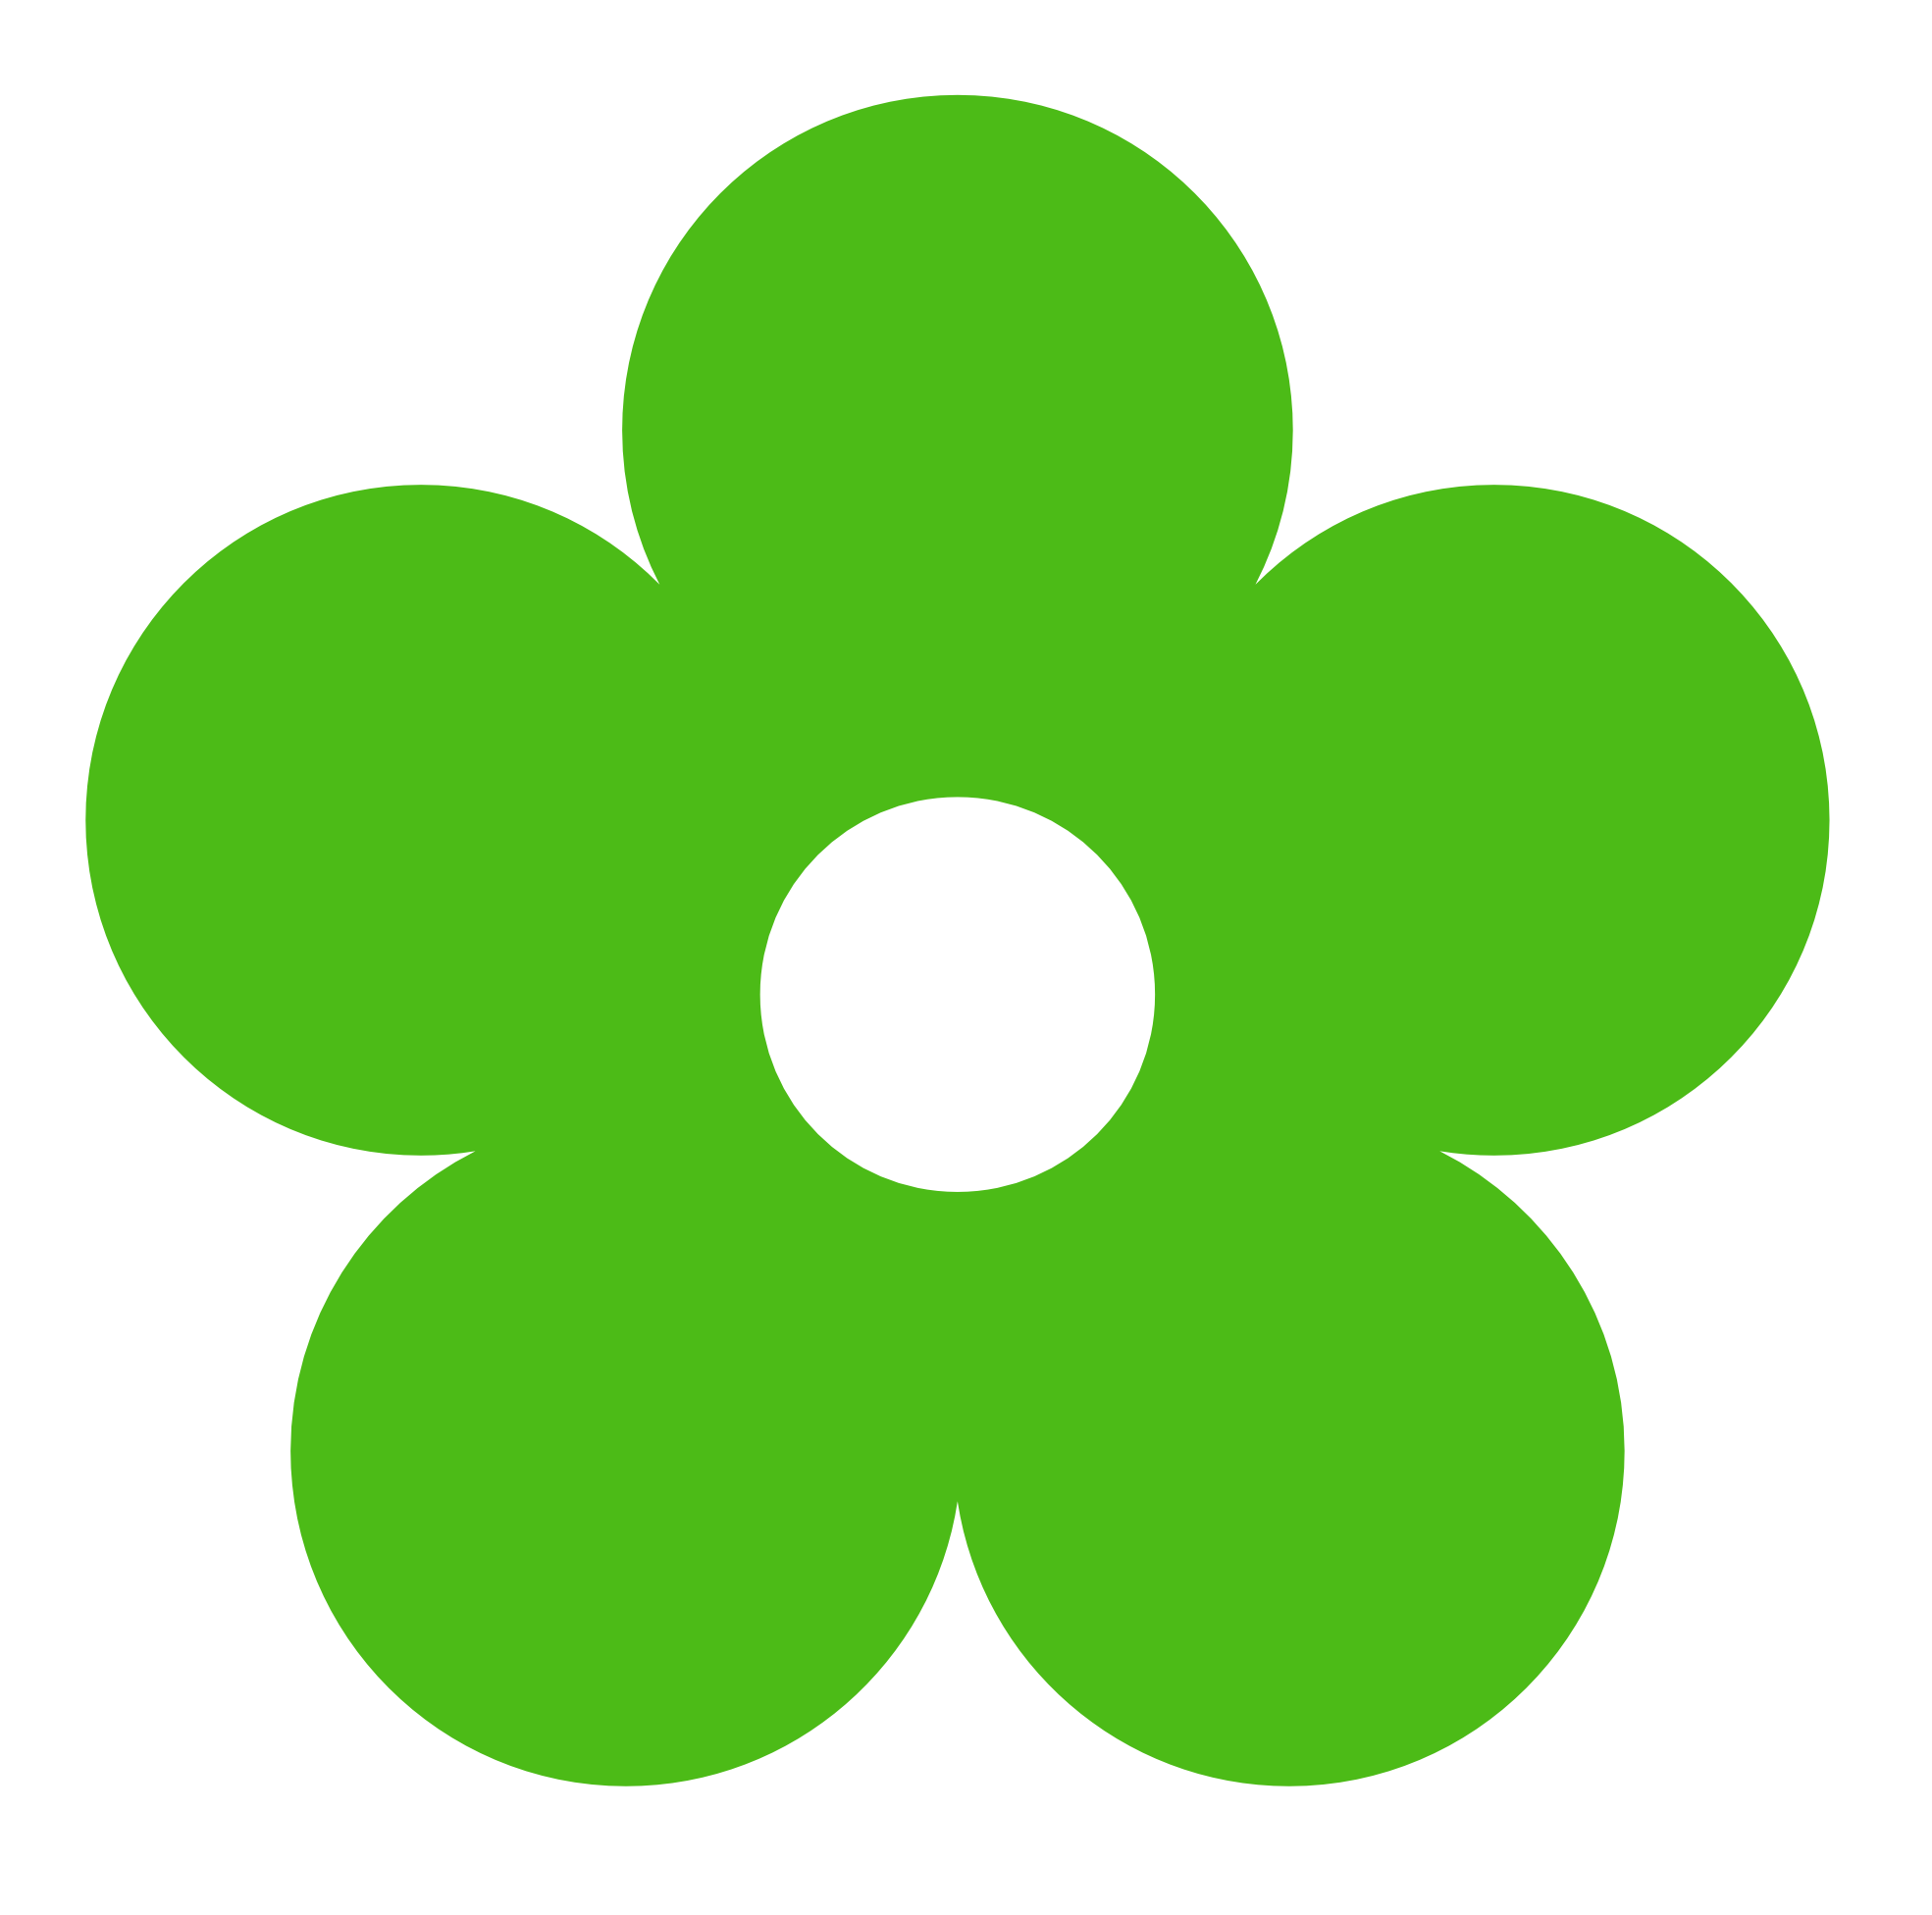 Green Flower Clipart - ClipArt Best